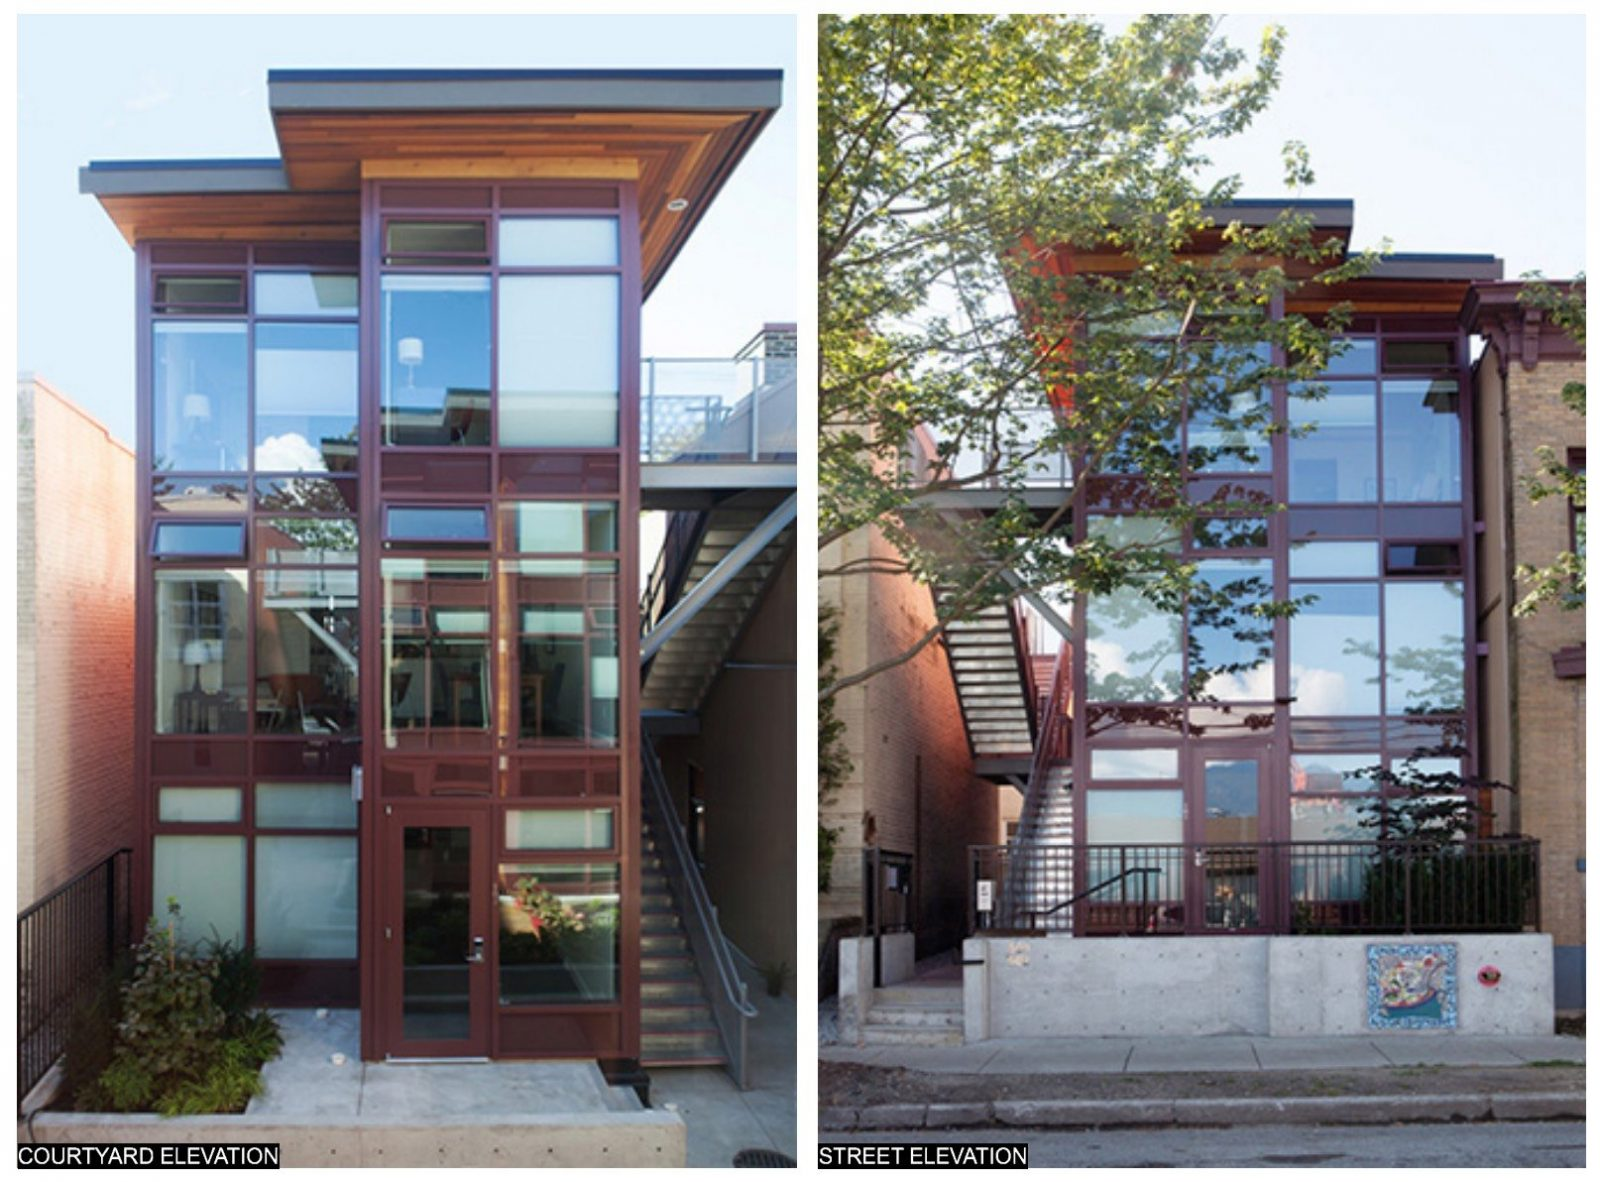 The Oneesan project on Alexander Street, featuring homes made out of shipping containers, was completed in 2013.